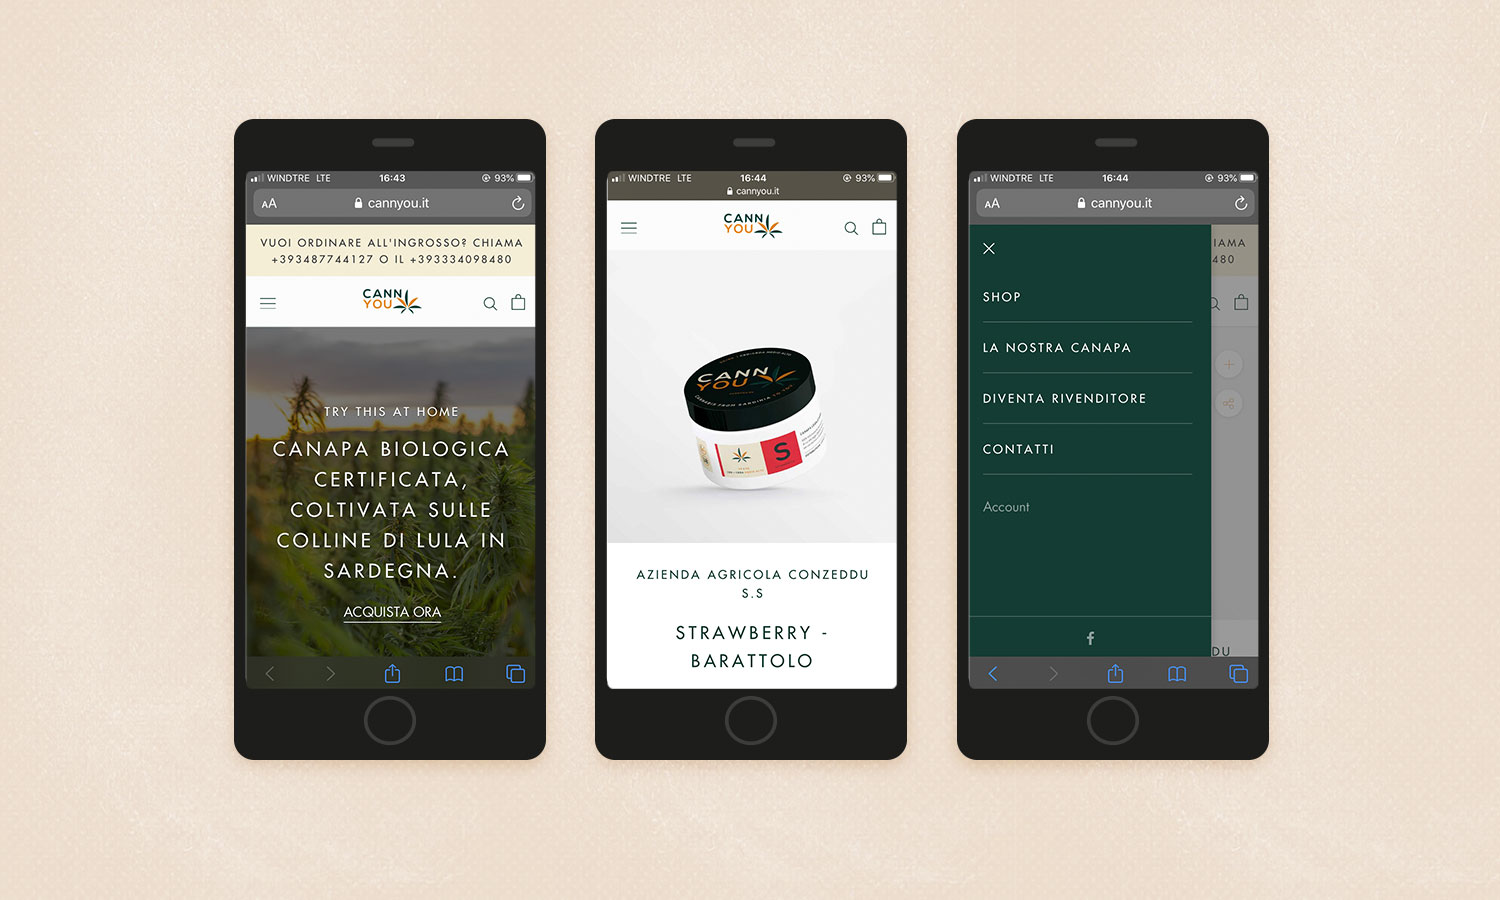 Cannyou ecommerce versione mobile